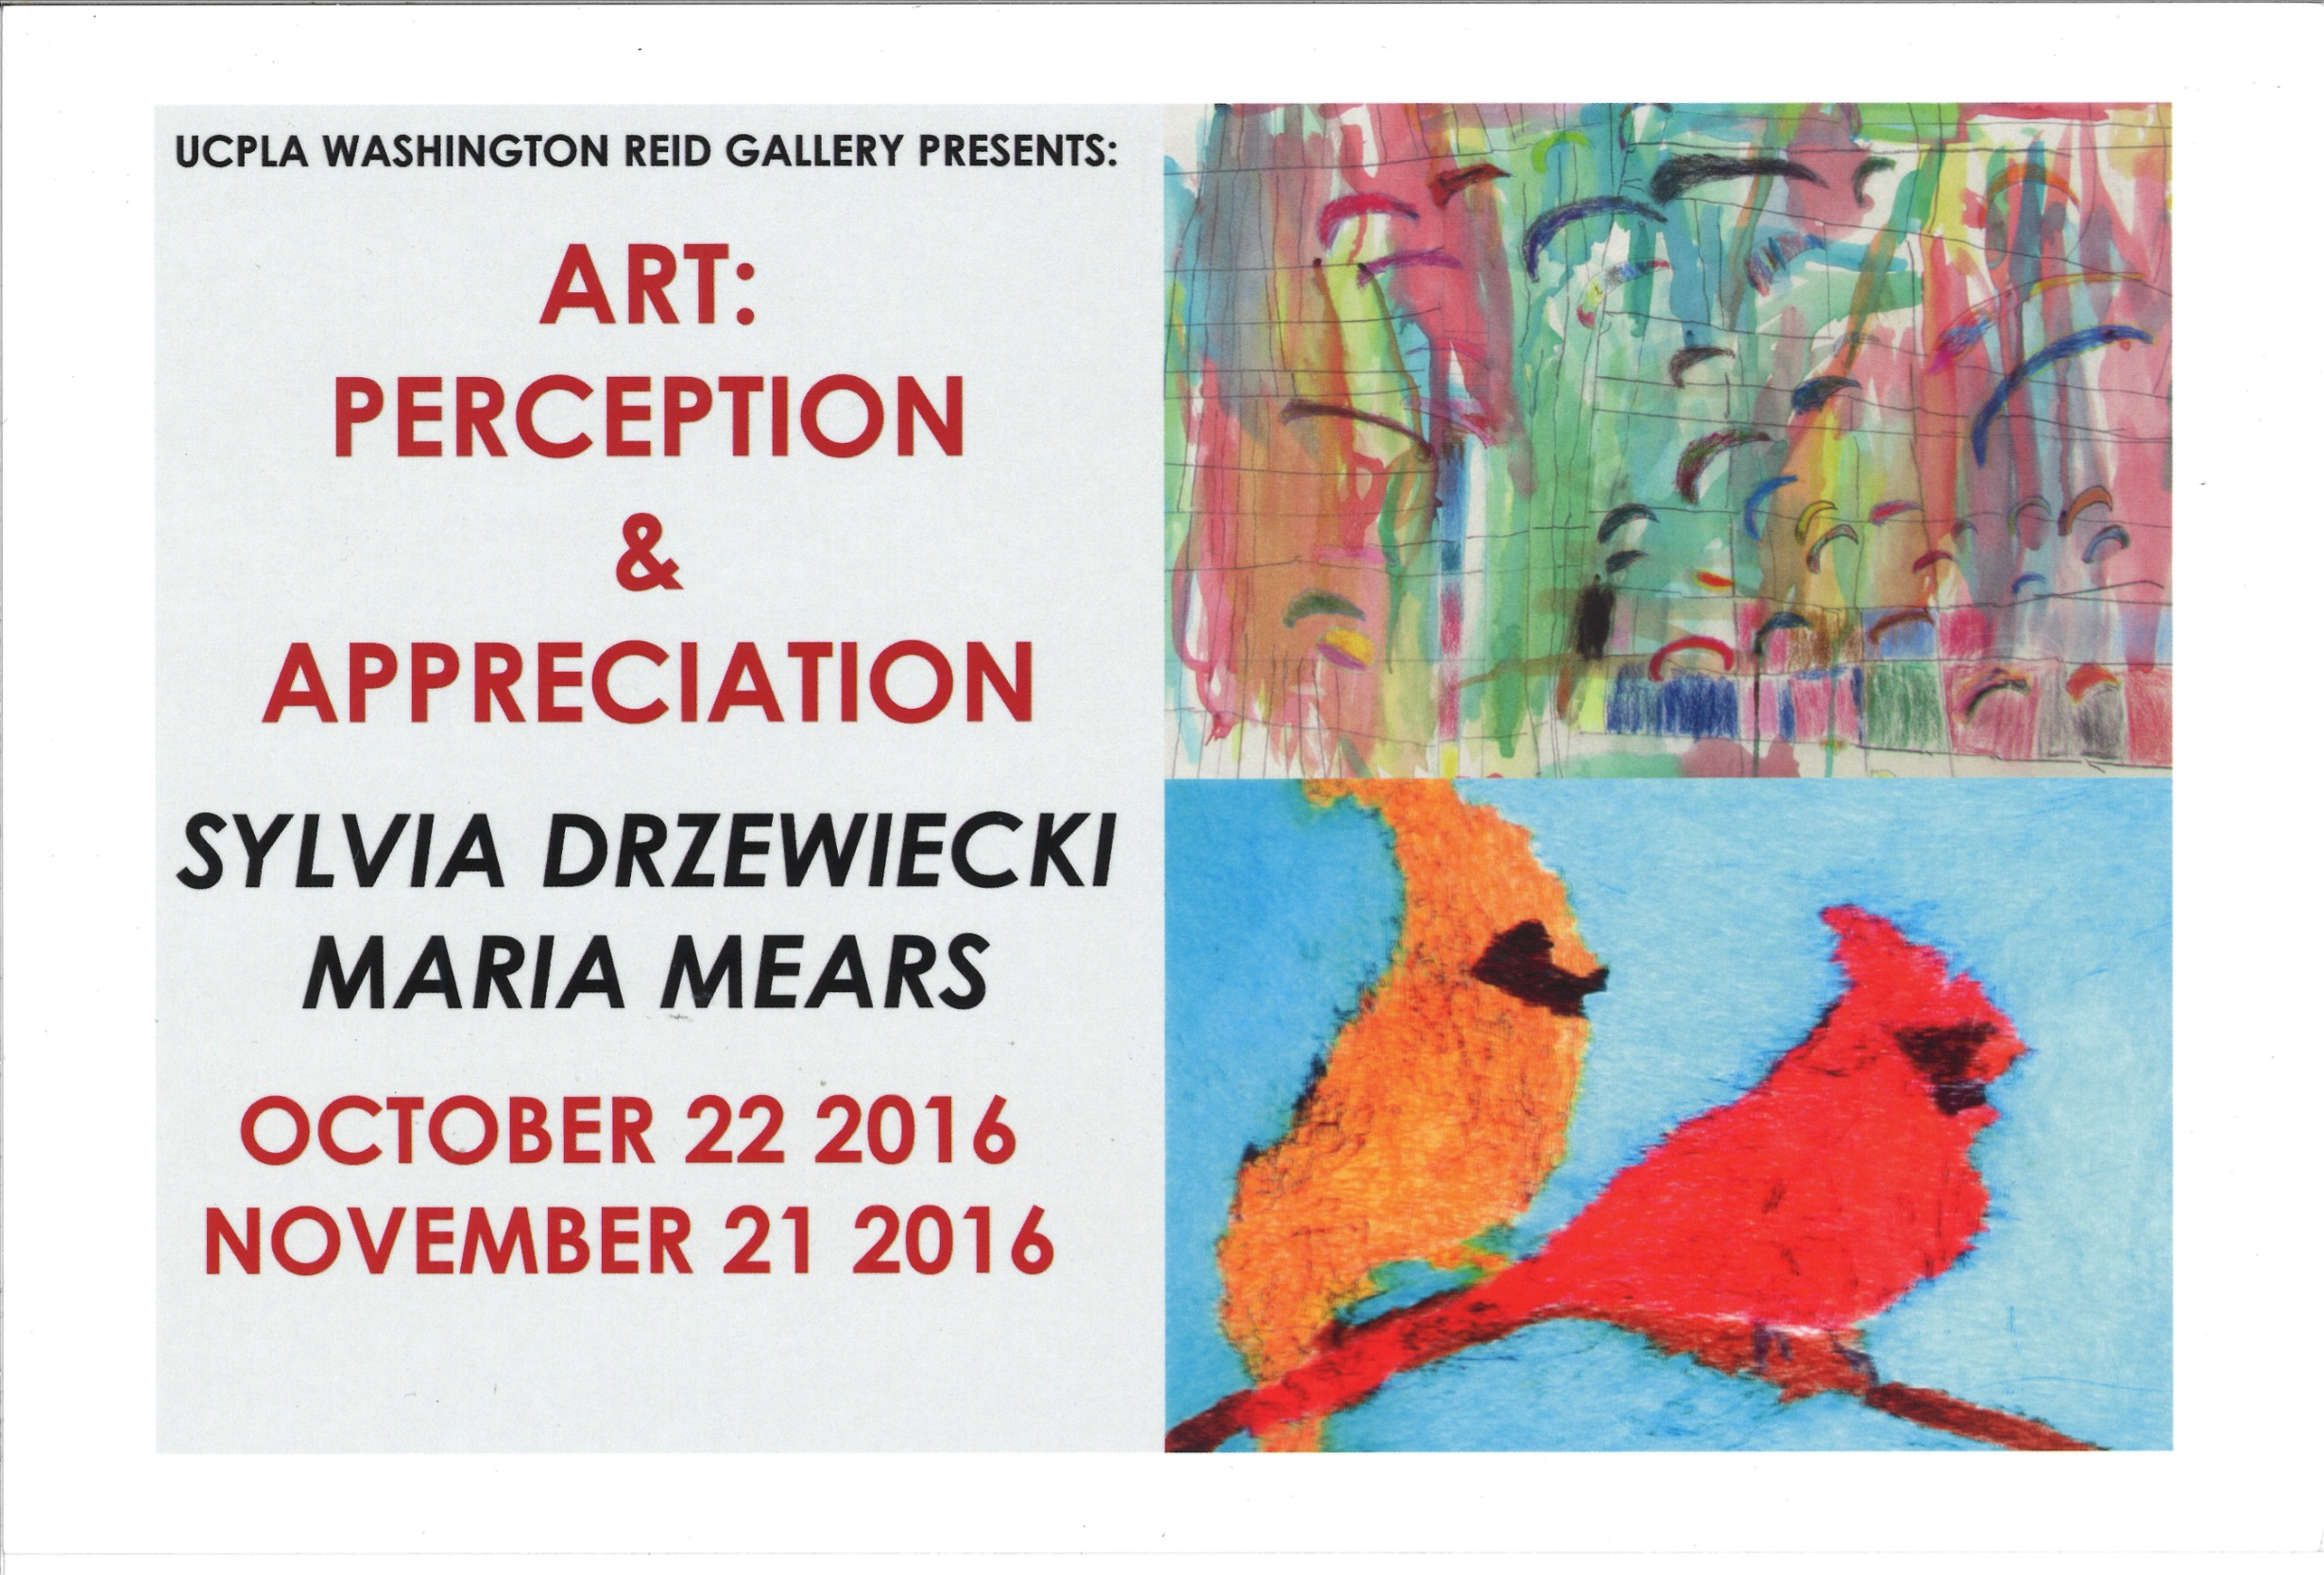 Art: Perception & Appreciation: Sylvia Drzewiecki & Maria Mears